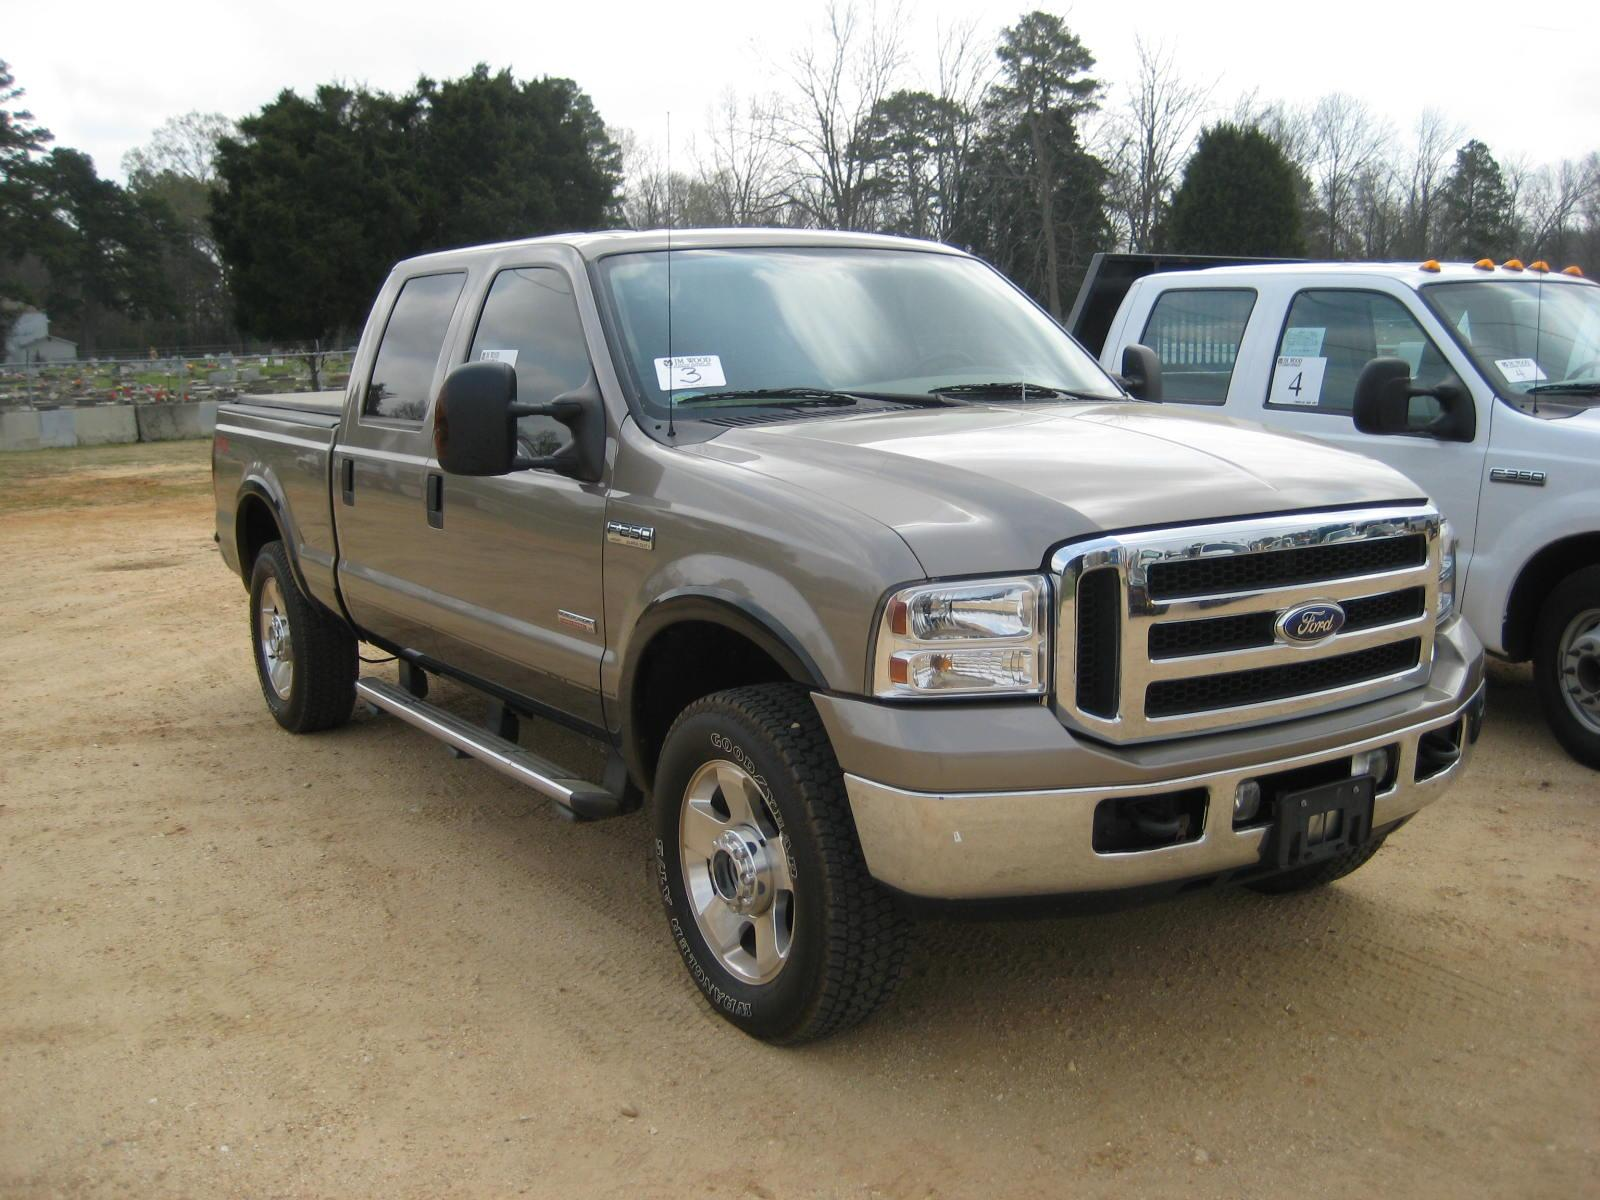 small resolution of image 1 2006 ford f250 lariat crew cab 4x4